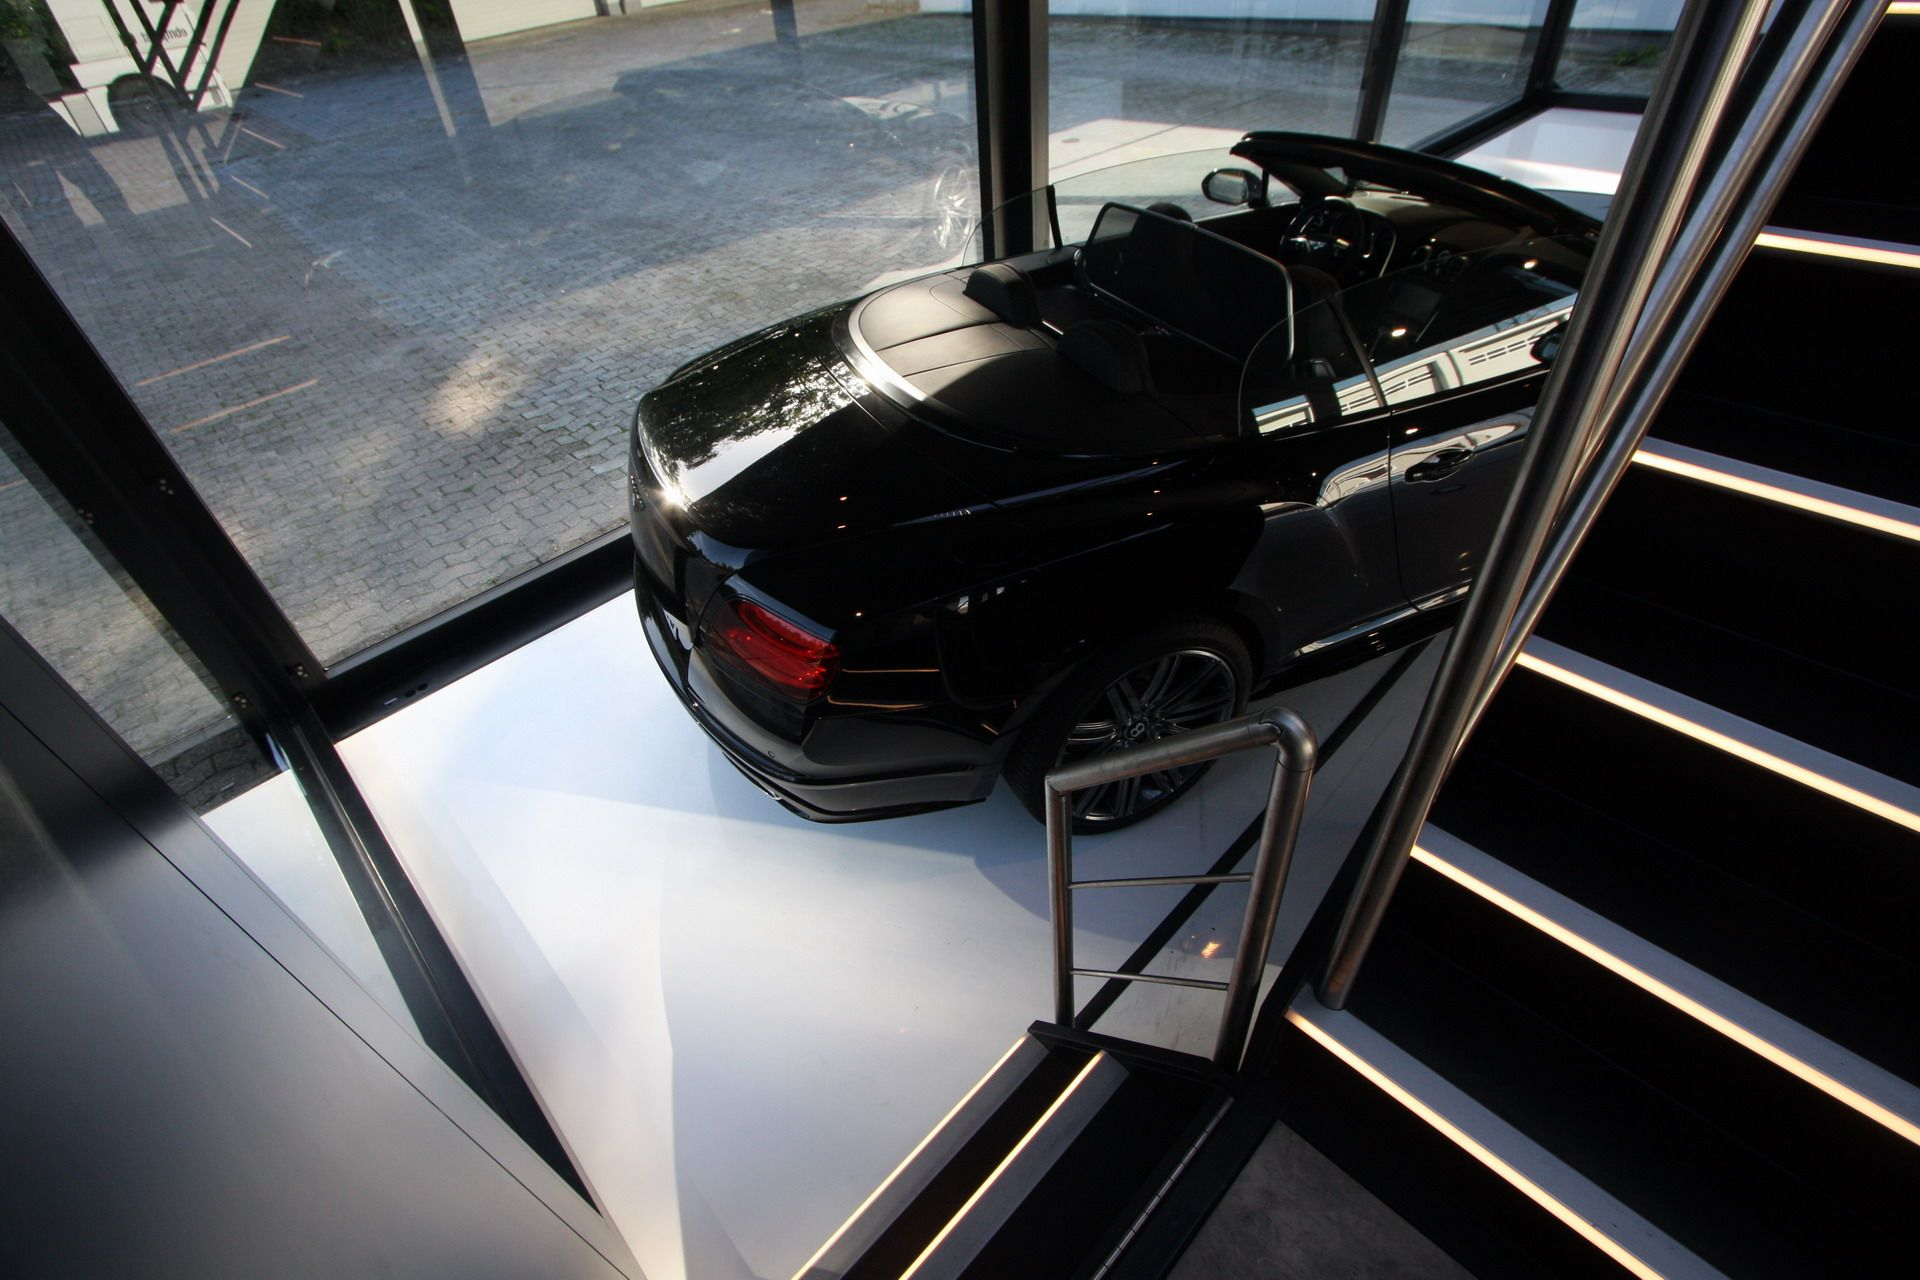 Bentley used our Pursuit mobile showroom as a popup car